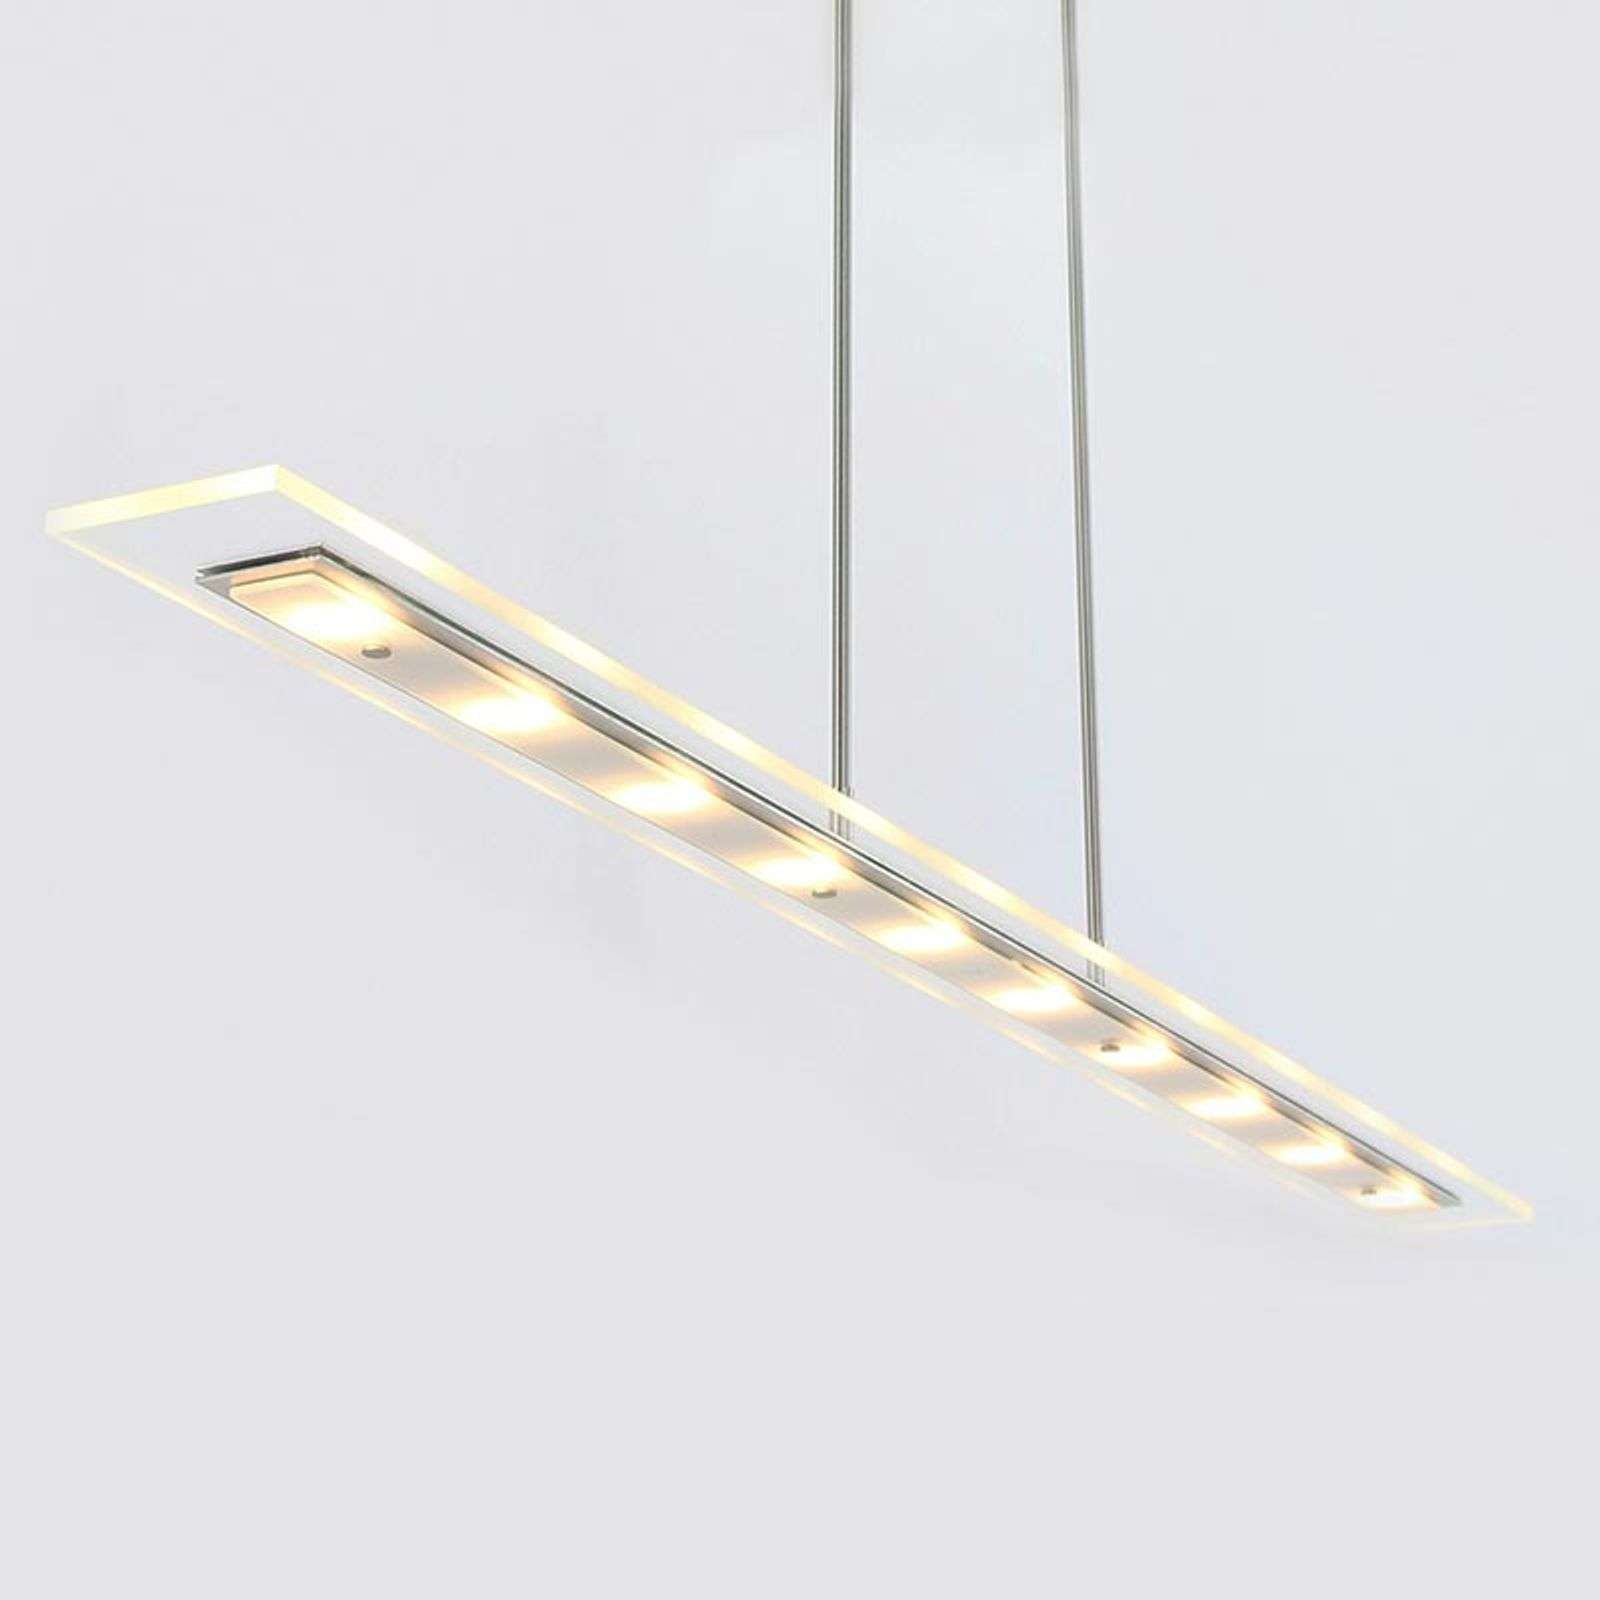 Suspension LED Plato 140cm clair, dimmable